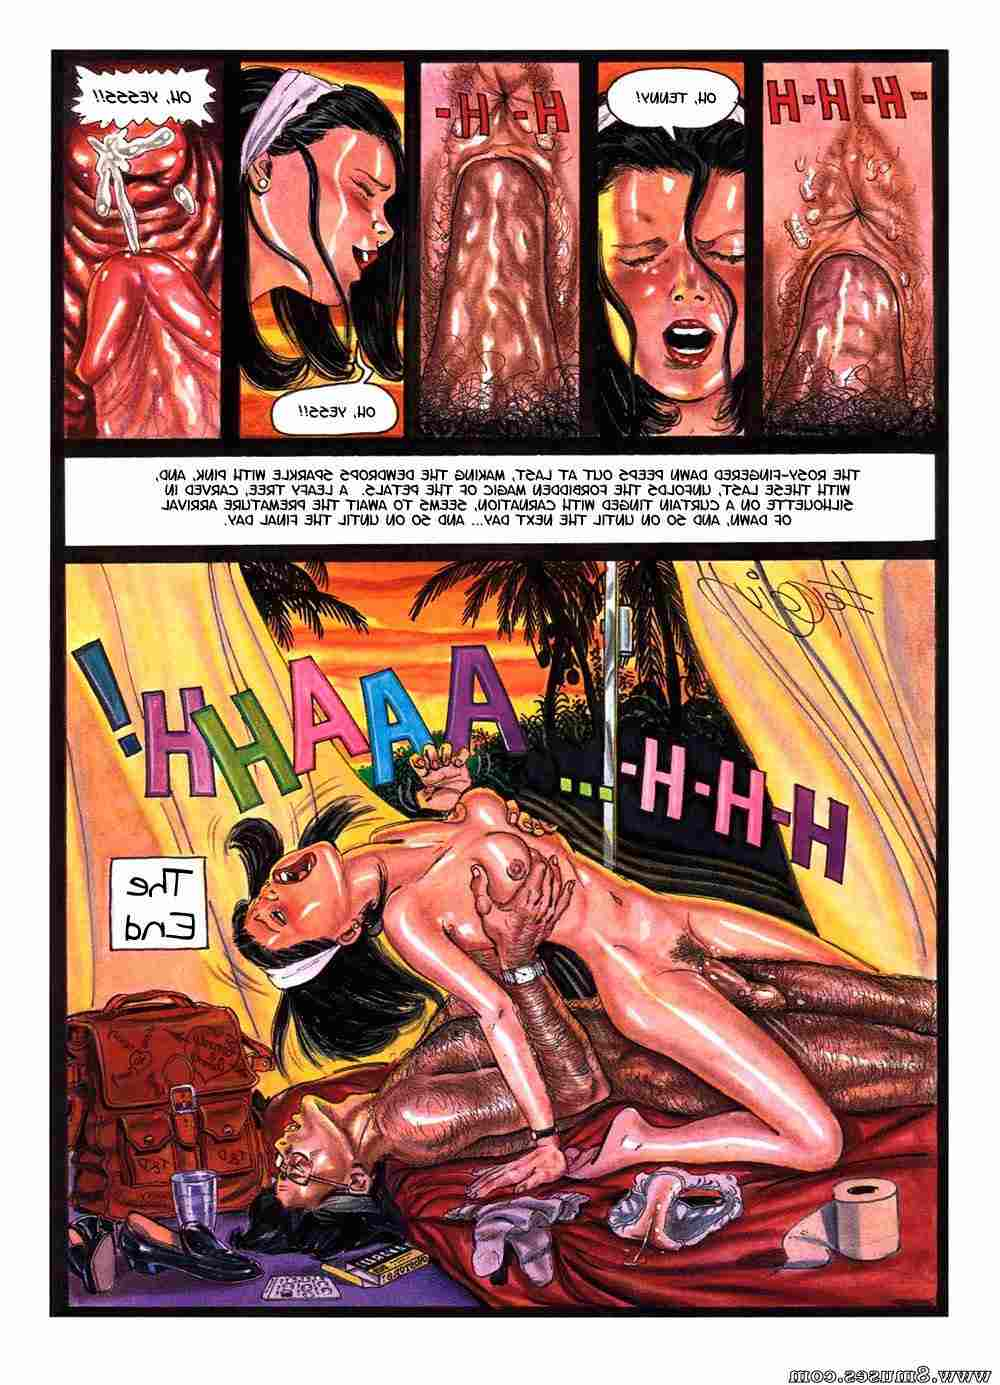 Ferocius-Comics/Forbidden-Flower Forbidden_Flower__8muses_-_Sex_and_Porn_Comics_62.jpg